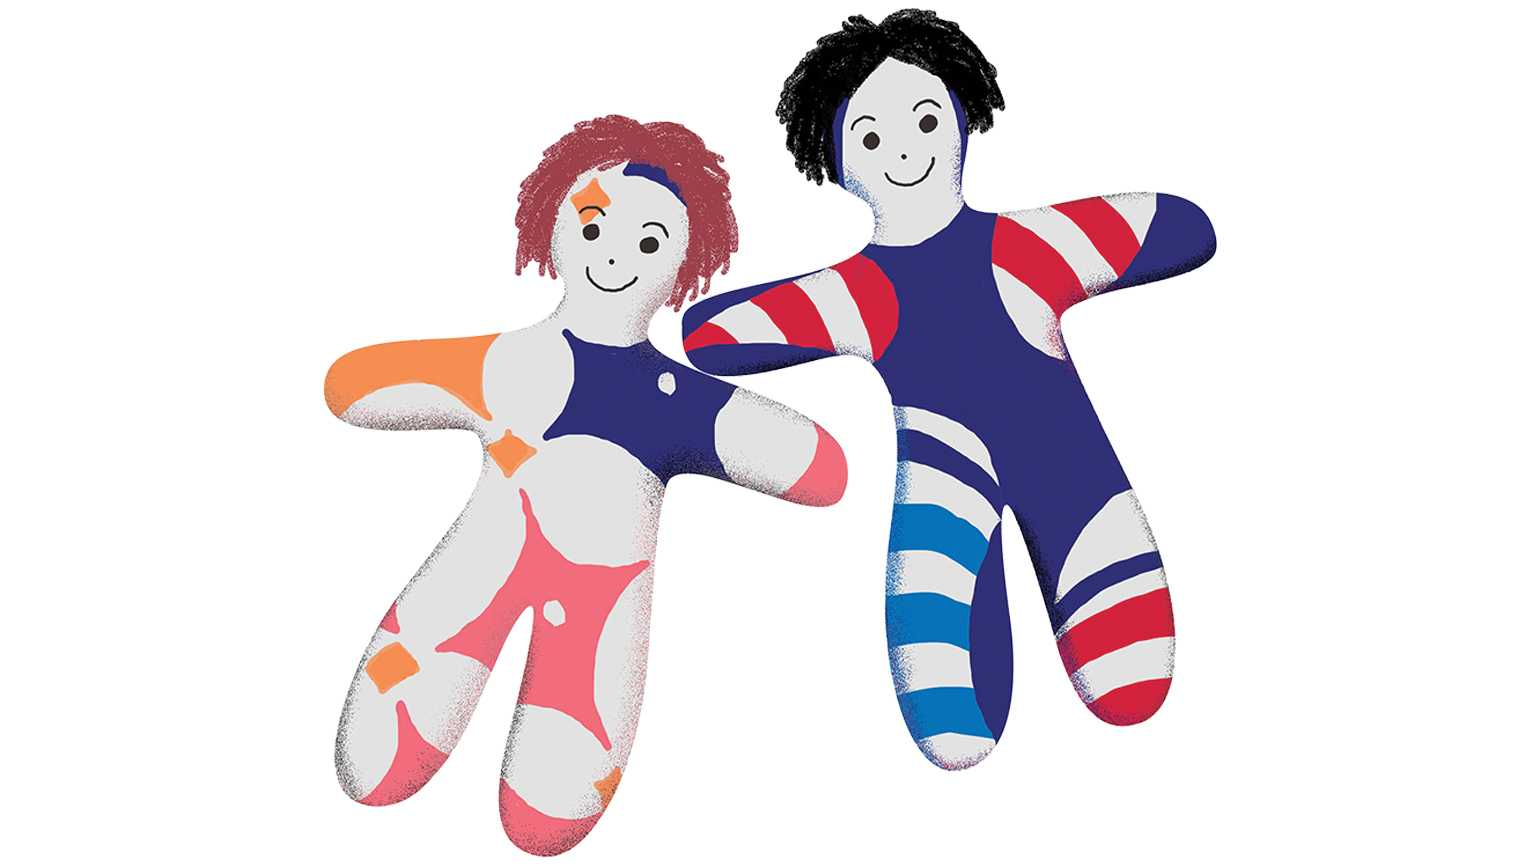 An illustration of a pair of colorful patterned dolls.